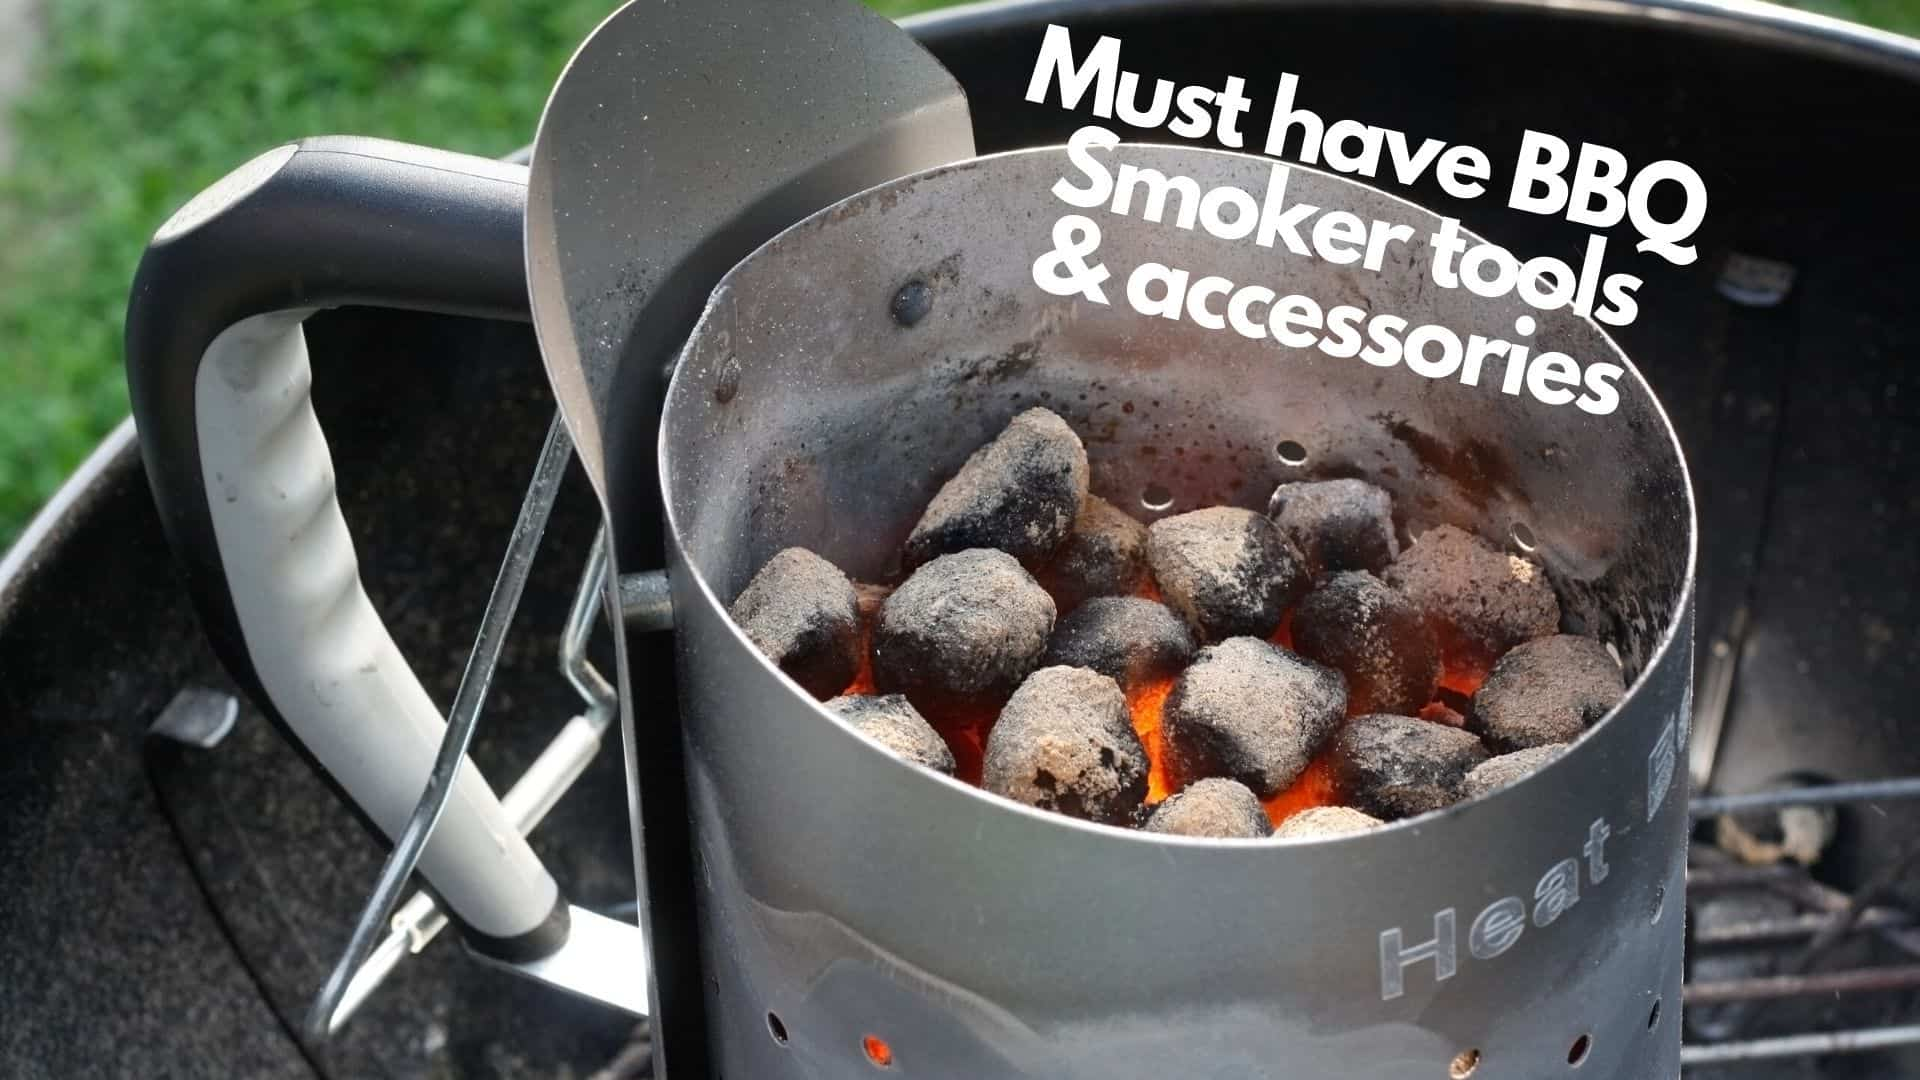 Best BBQ smoker accessories | 20 must-have smoking tools